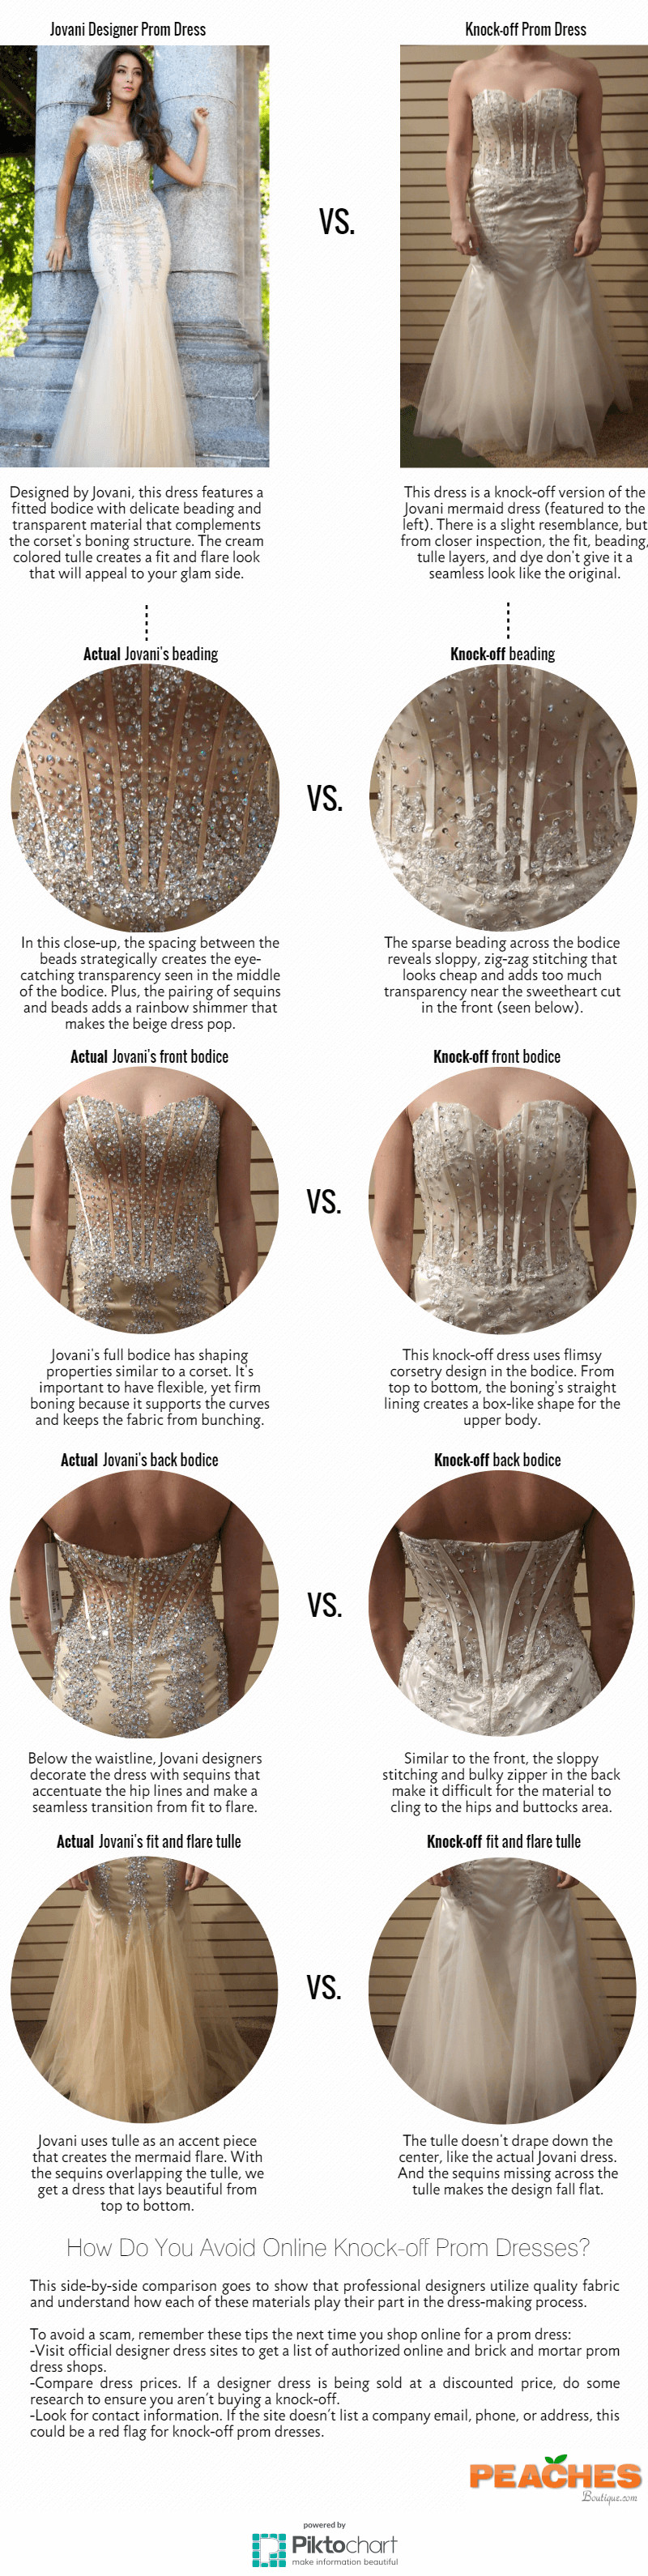 Counterfeit dress comparison chart